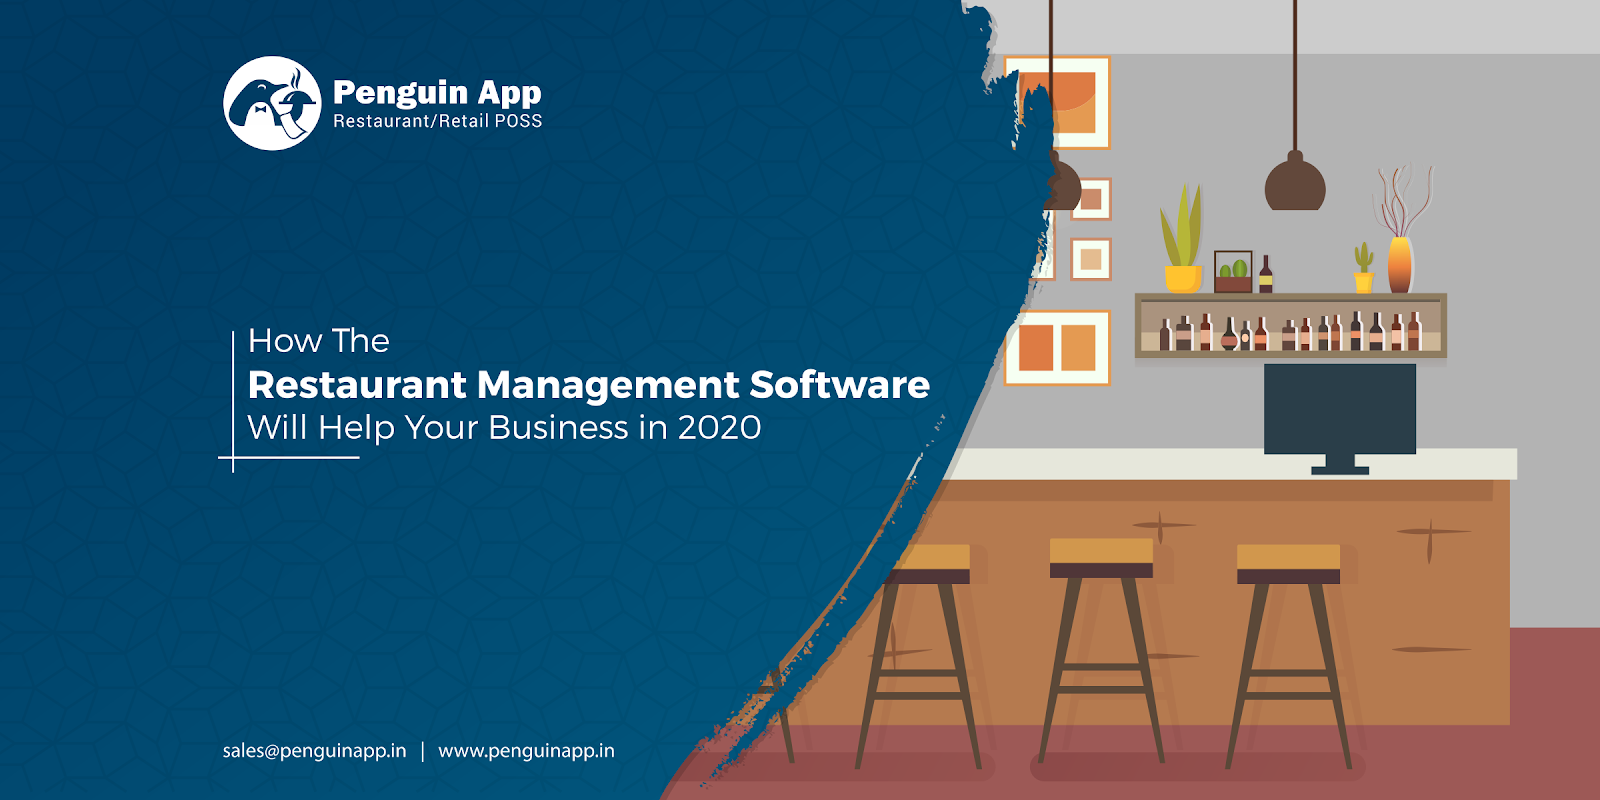 How The Restaurant Management Software will Help Your Business in 2020